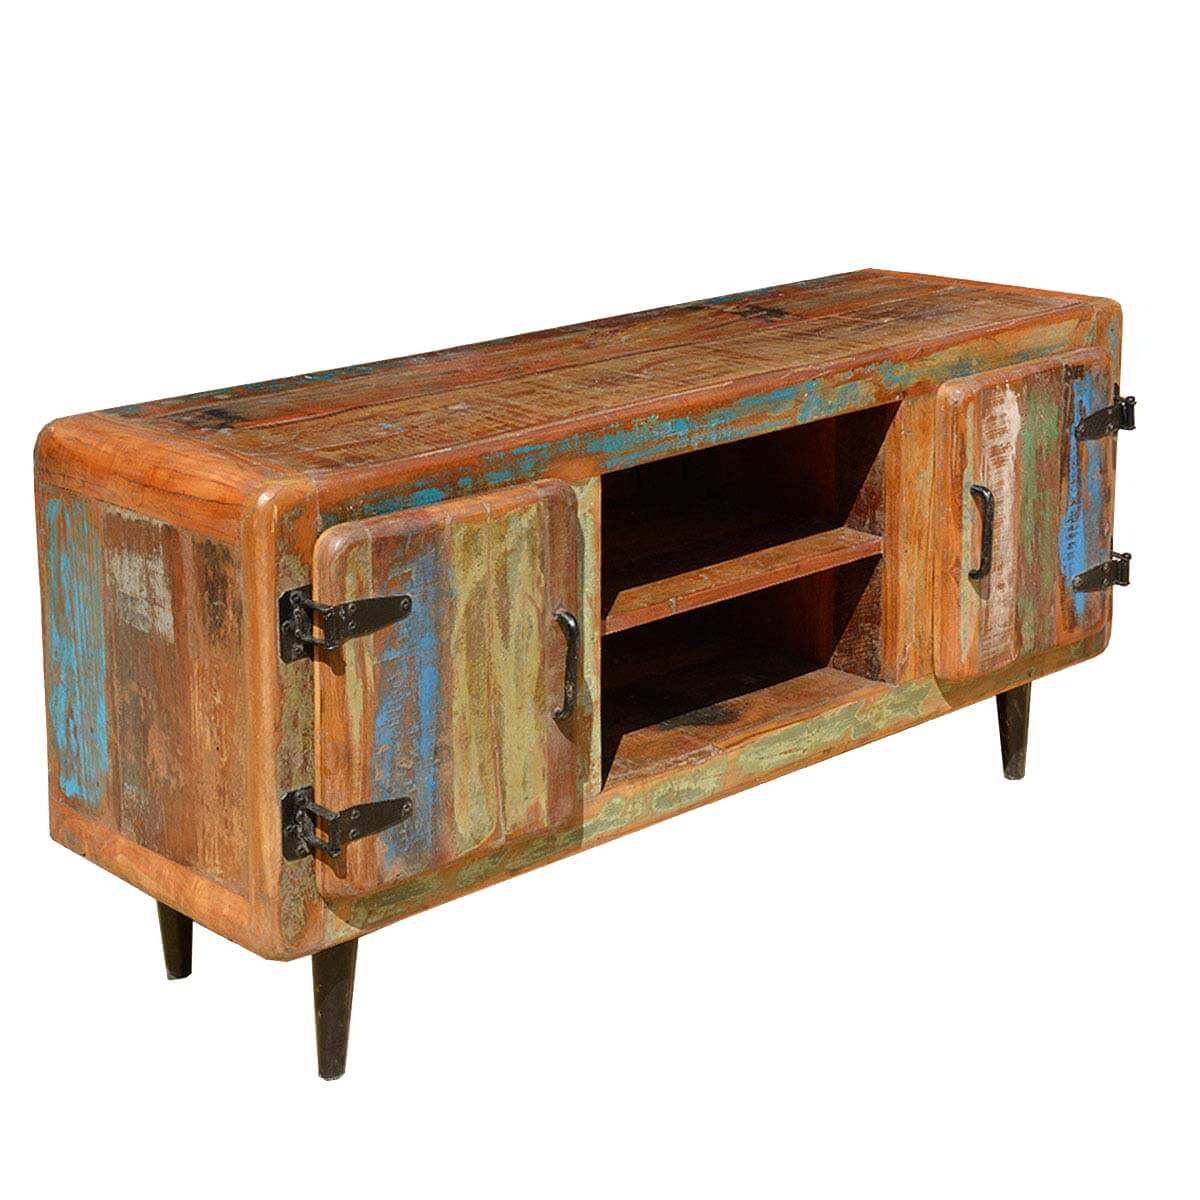 Reclaimed Wood Rustic Media Console TV Stand Unit Entertainment Center Furniture